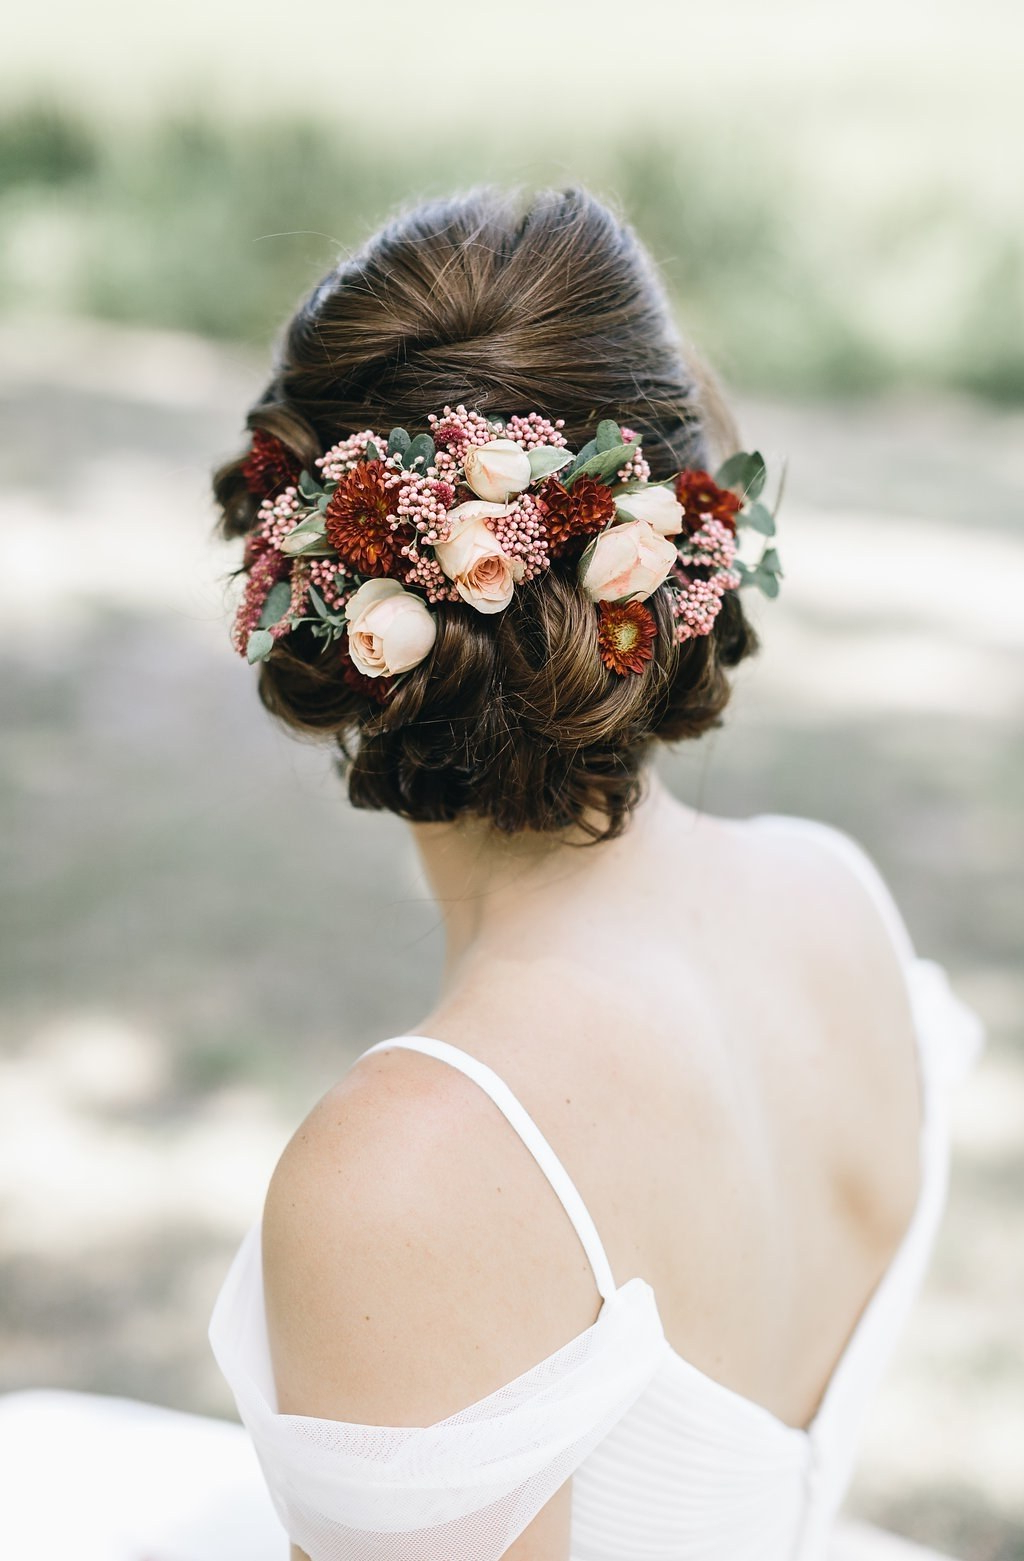 Brides Throughout Fashionable Undone Low Bun Bridal Hairstyles With Floral Headband (View 6 of 20)